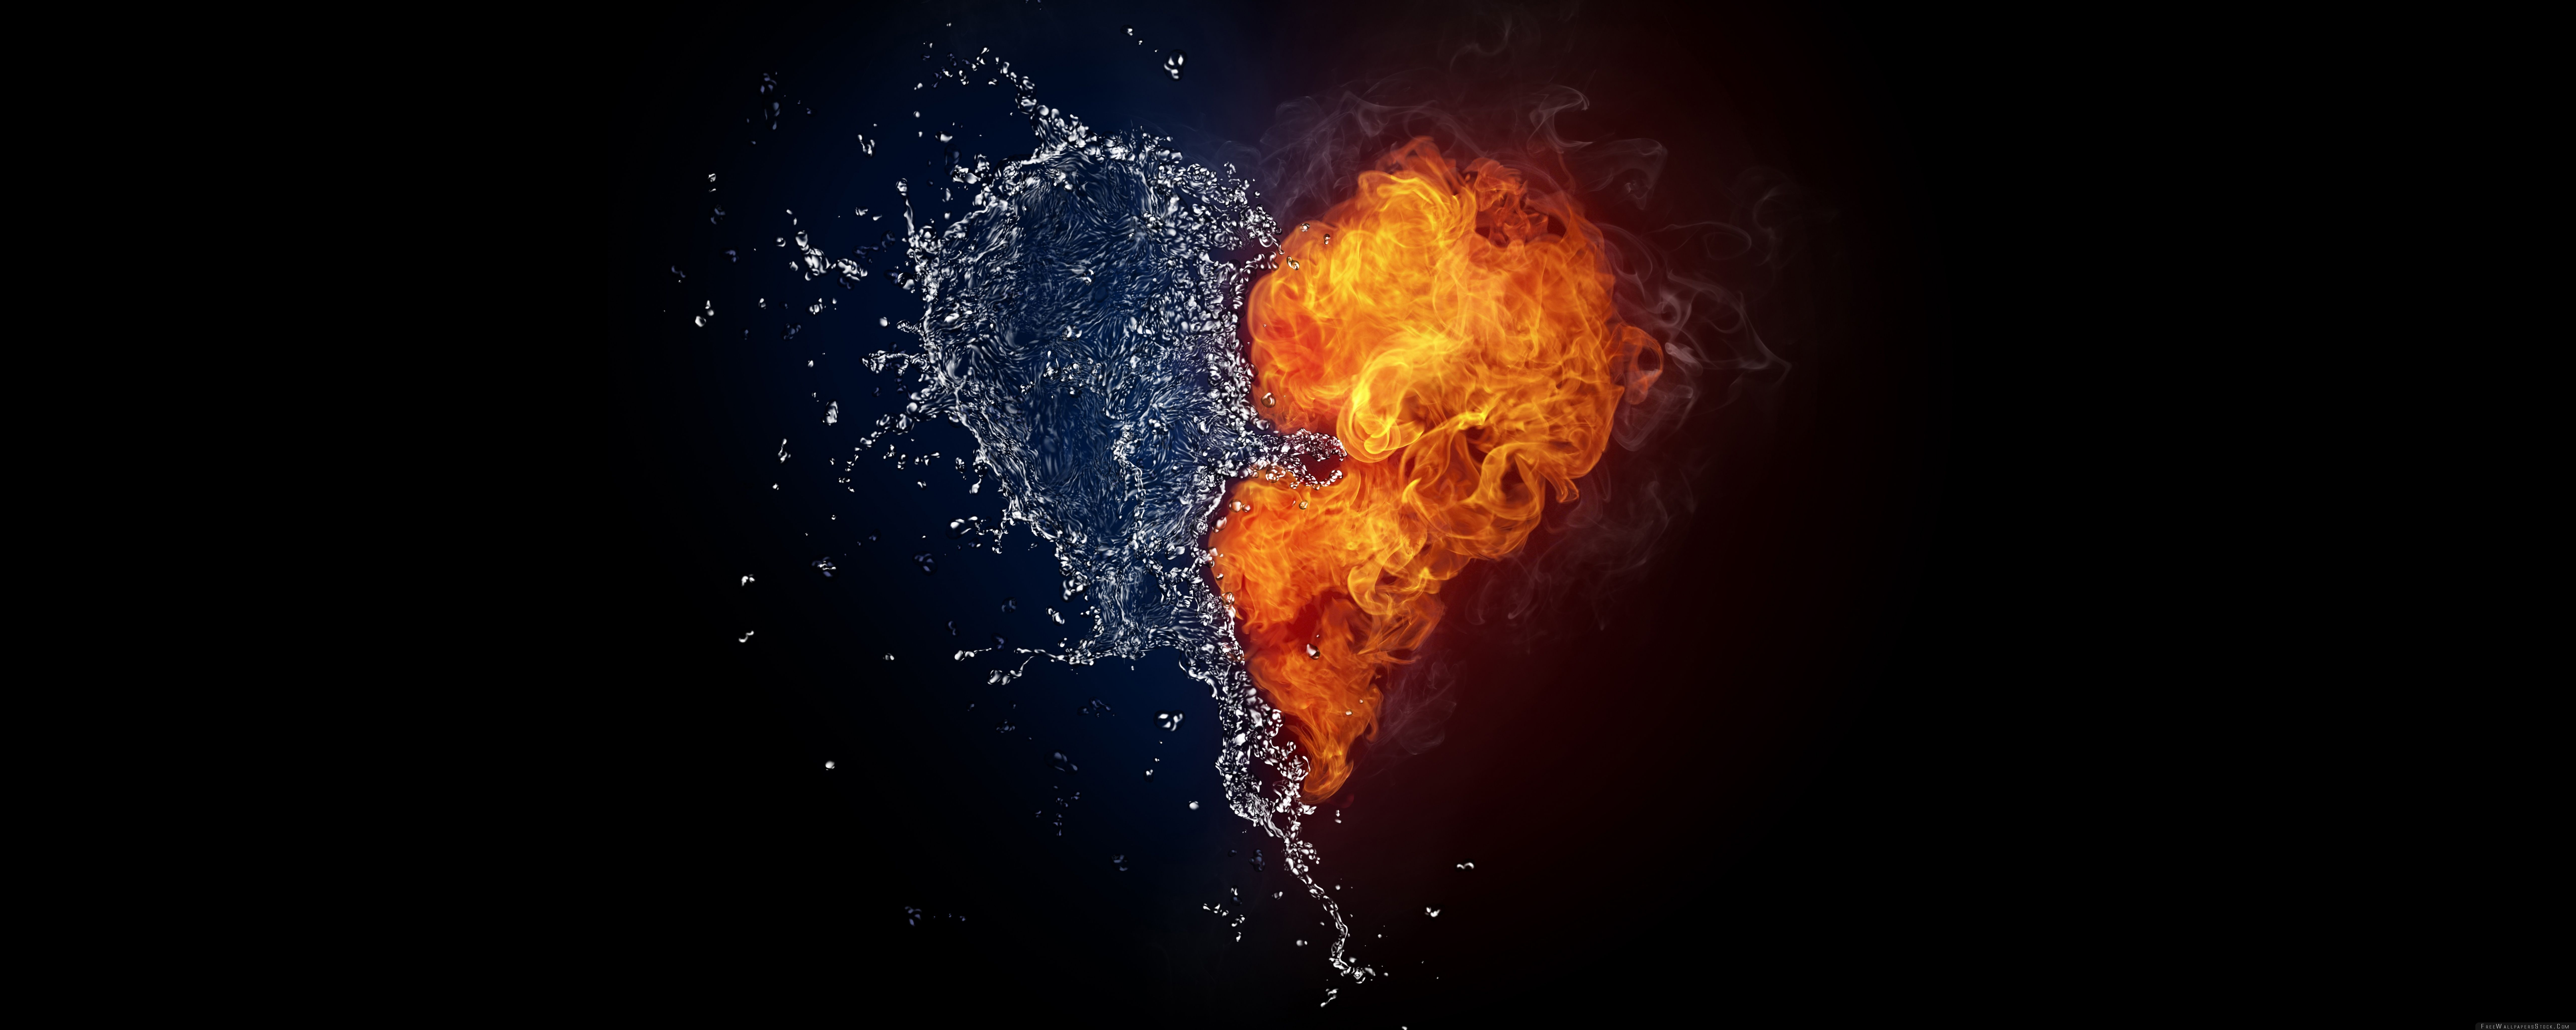 Download Free Wallpaper Water And Flames Heart